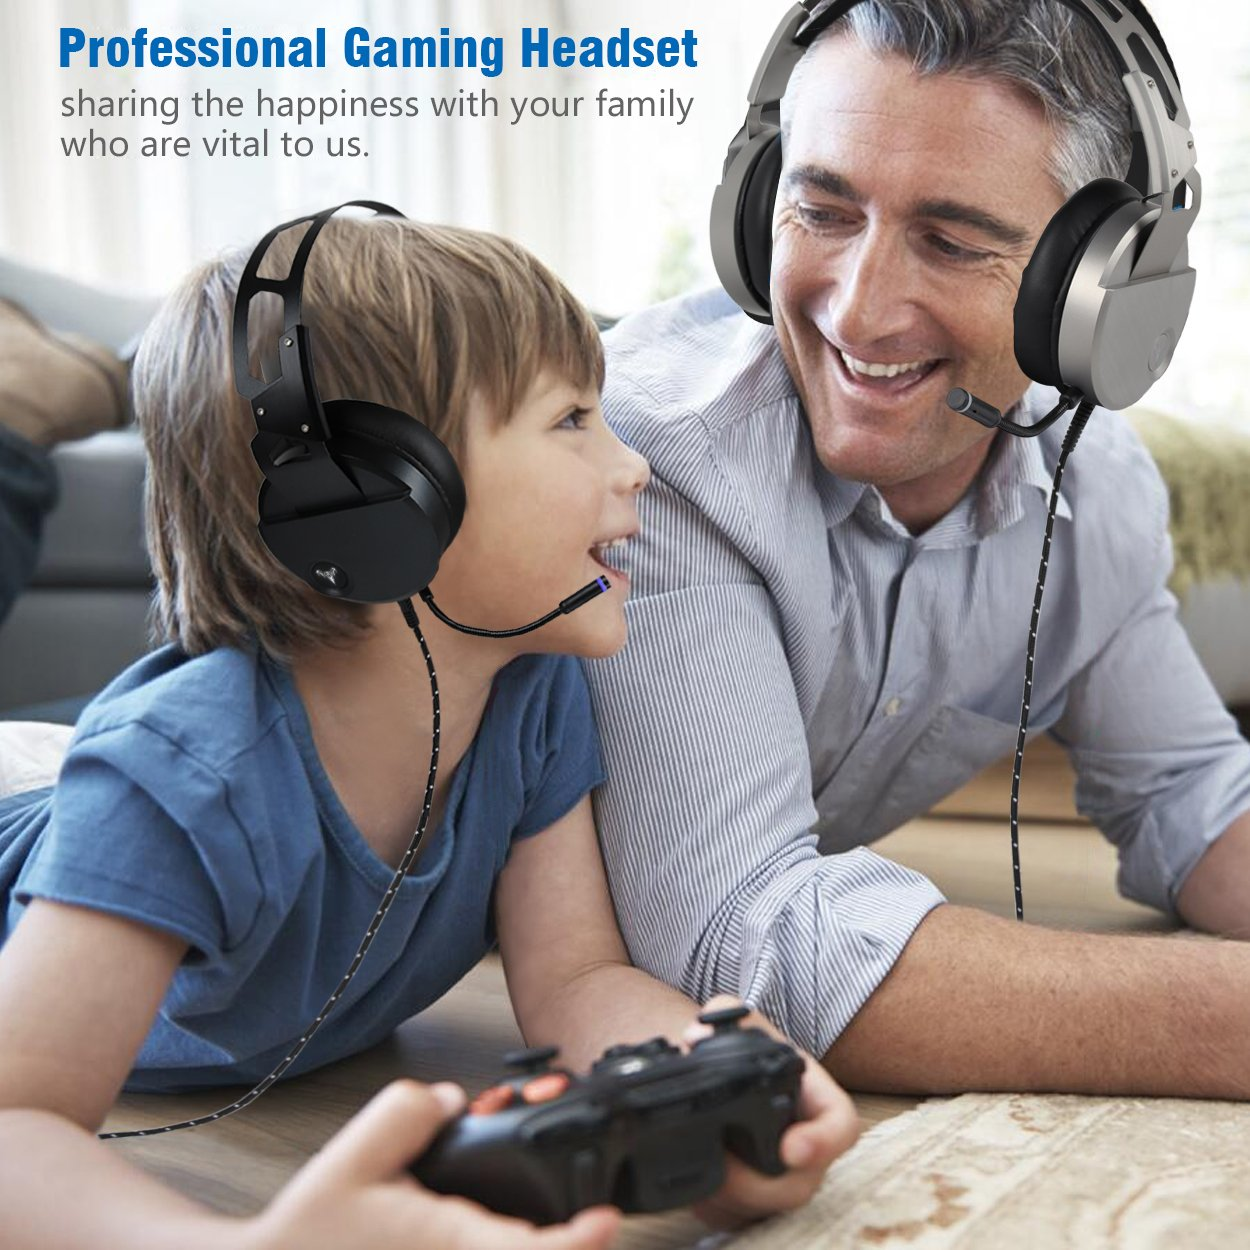 Amazon.com: Gaming Headset for PS4 Xbox One, USB Stereo Over Ear Headphones with Crystal Clear Sound, LED Lights & Noise-Canceling Microphone for Laptop, ...